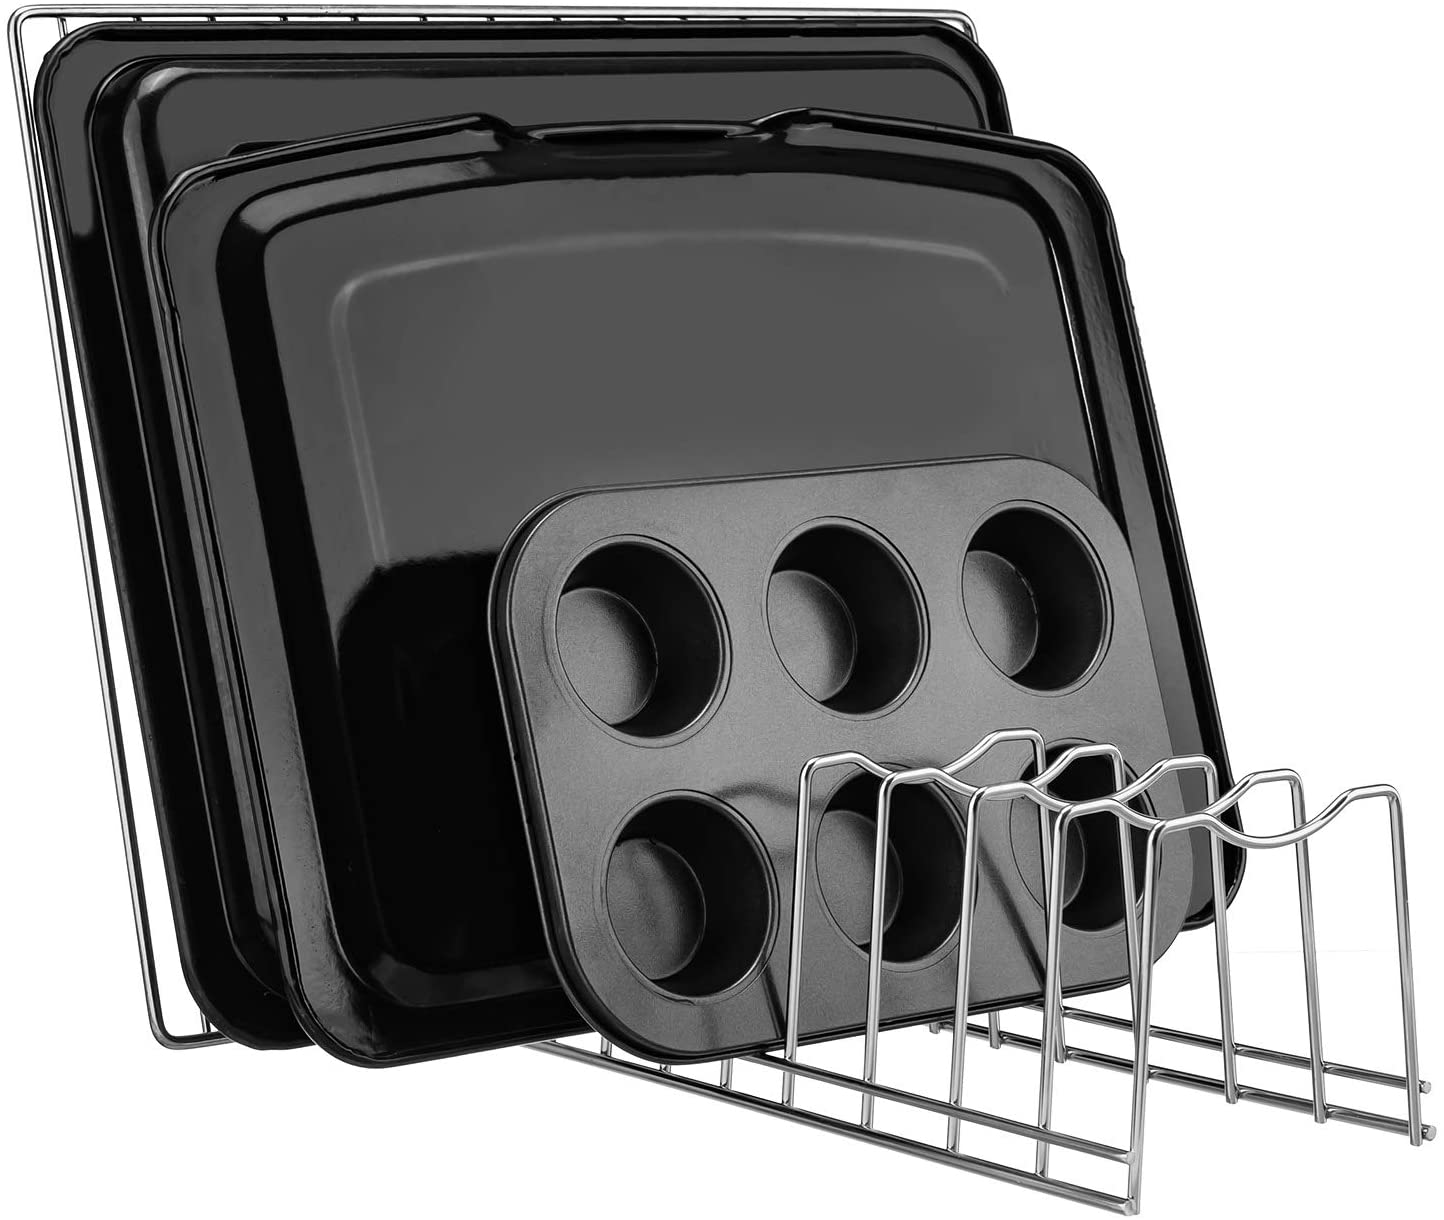 Kitchen Pot Lid Holder Organizer, Rack Cutting Boards, Bakeware, Reusable Containers, Plates (2): Home Improvement